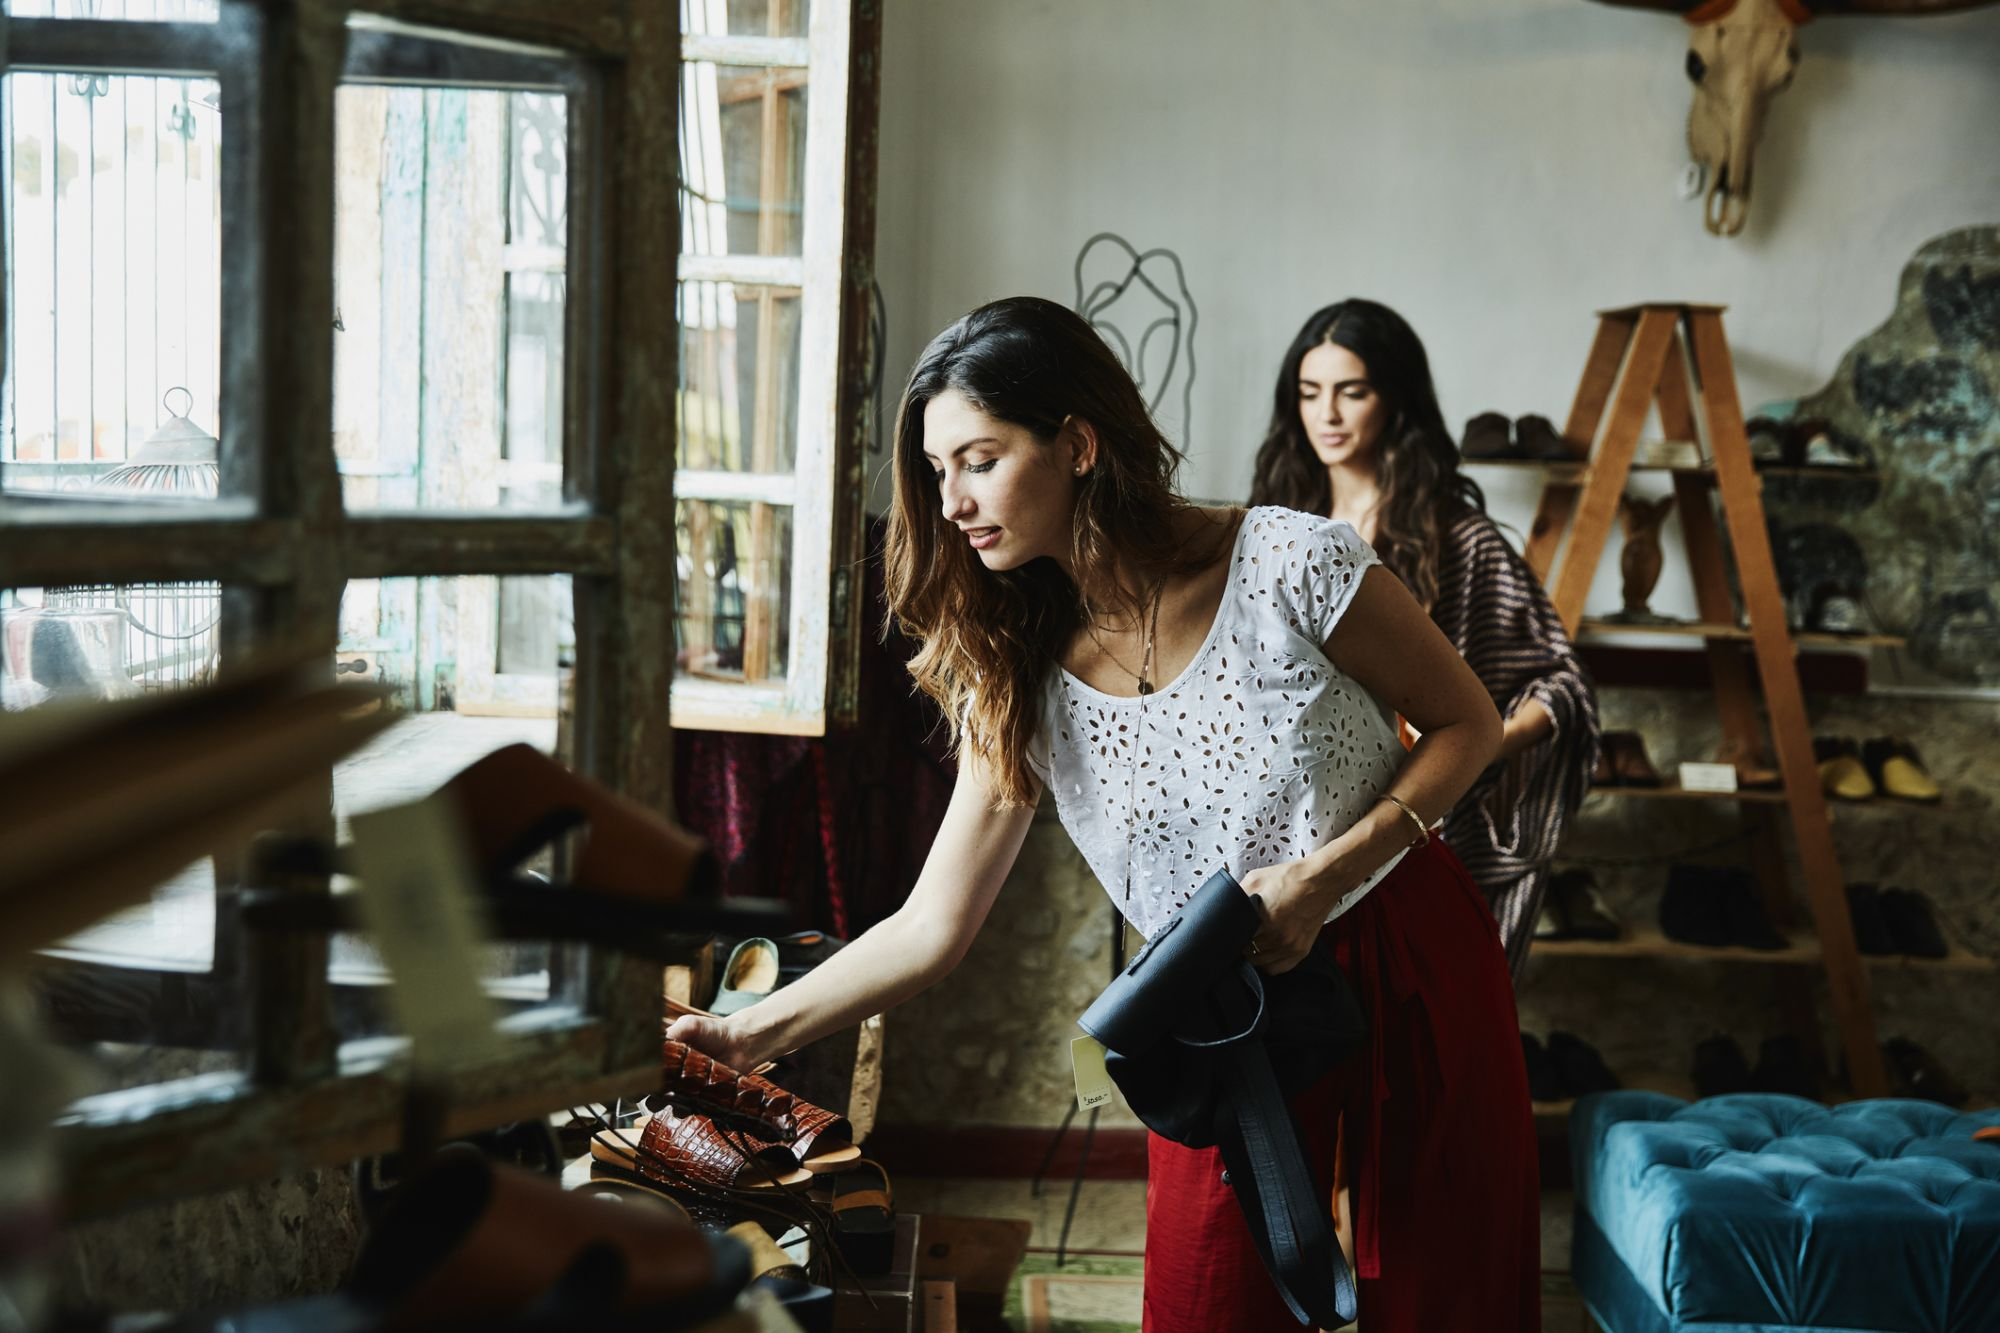 , 3 Ways Your Small Business Can Pivot Toward Focusing More on Hispanic Consumers, Saubio Making Wealth